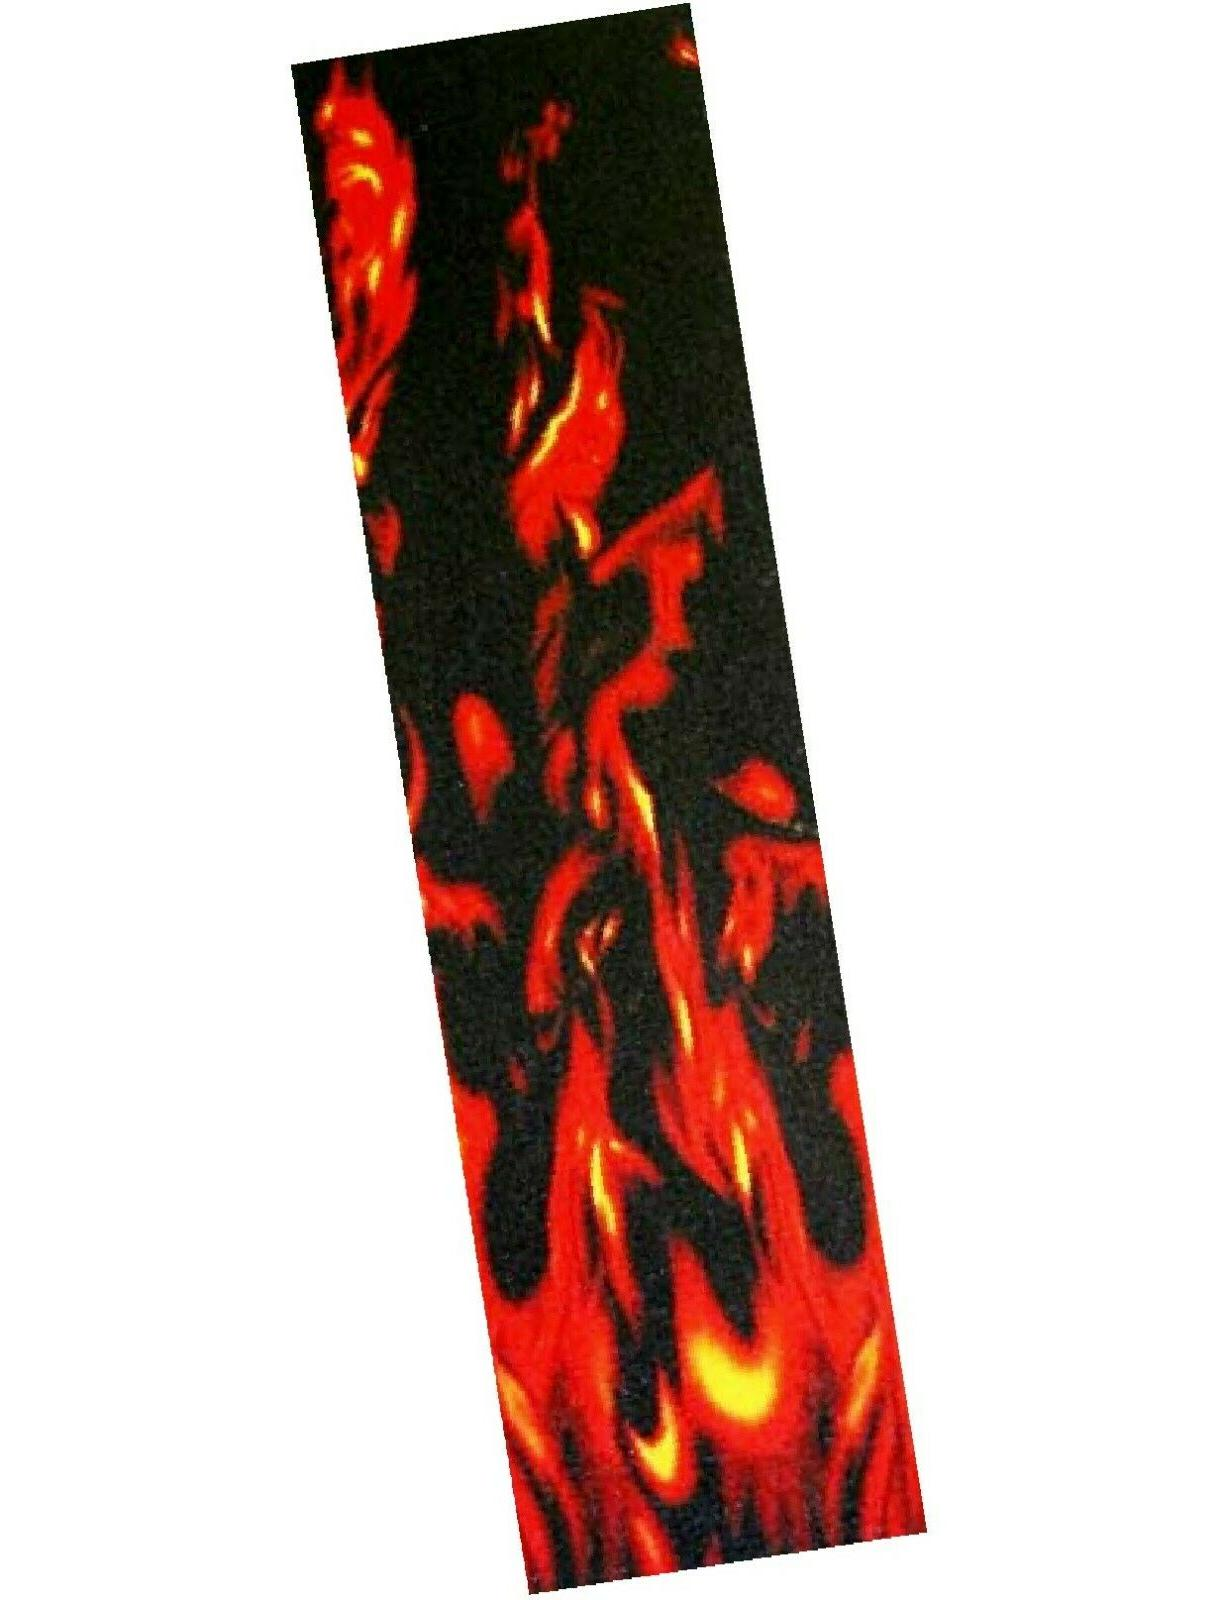 pro skateboard grip tape with flame graphic